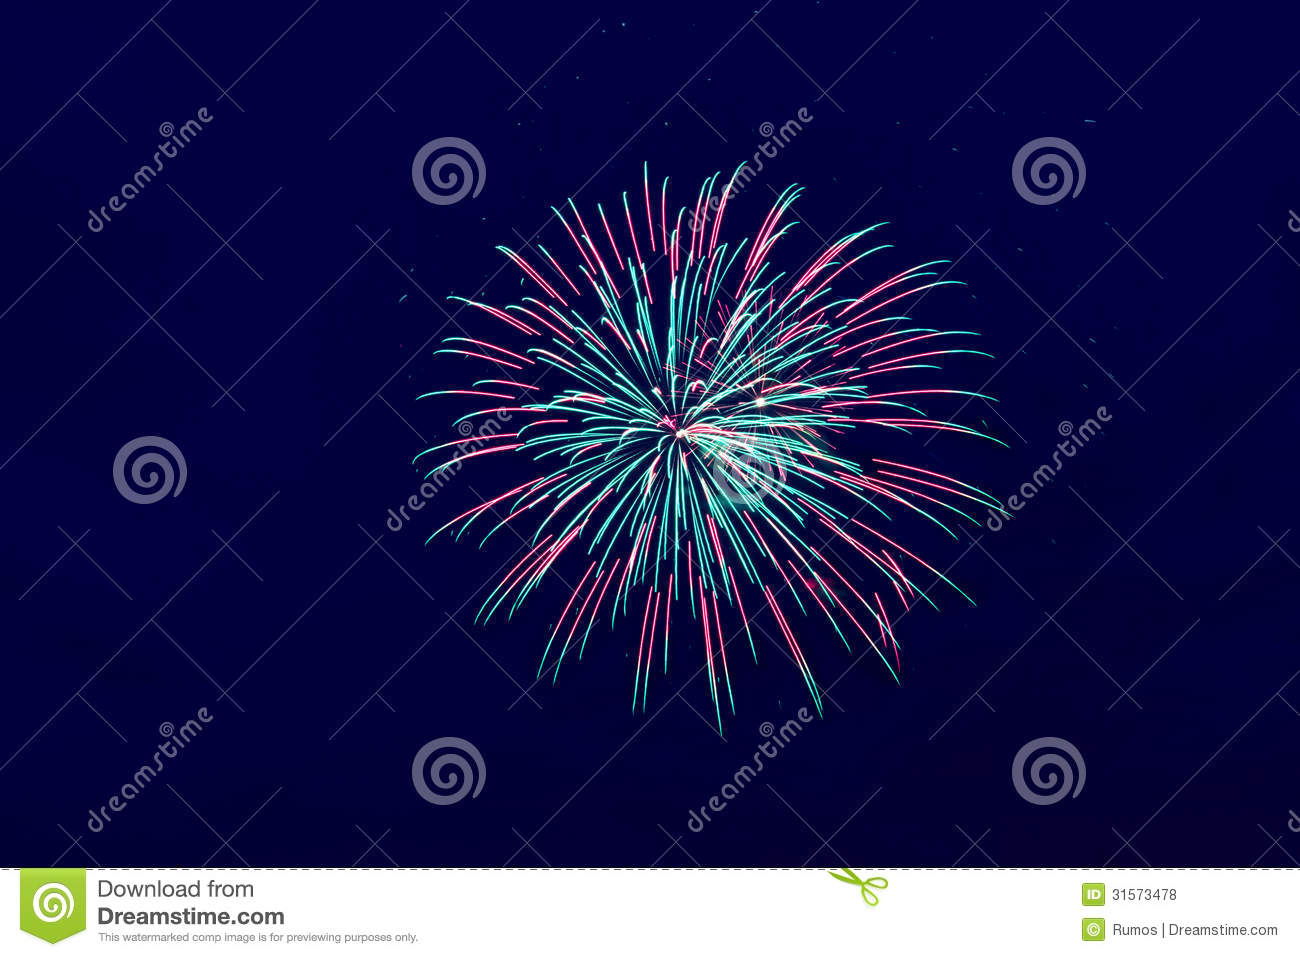 Wallpaper Salute Sky Holiday Colorful 3376x4220: Colorful Fireworks On The Dark Sky Background Royalty Free